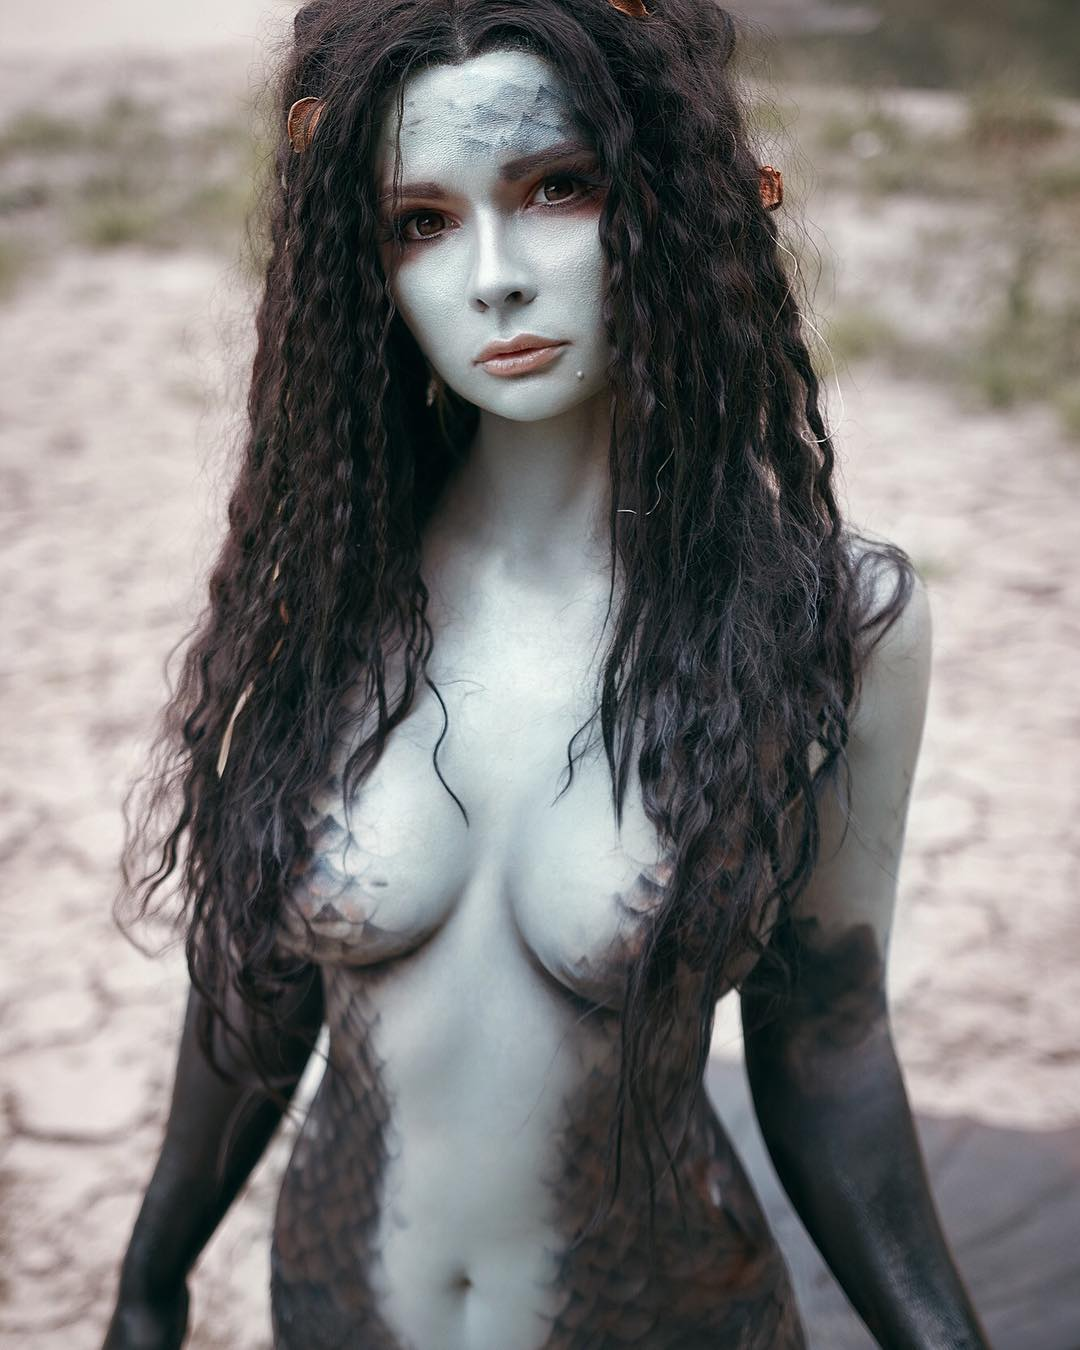 Jannet Incosplay Sexy Boobs Pictures on Topless